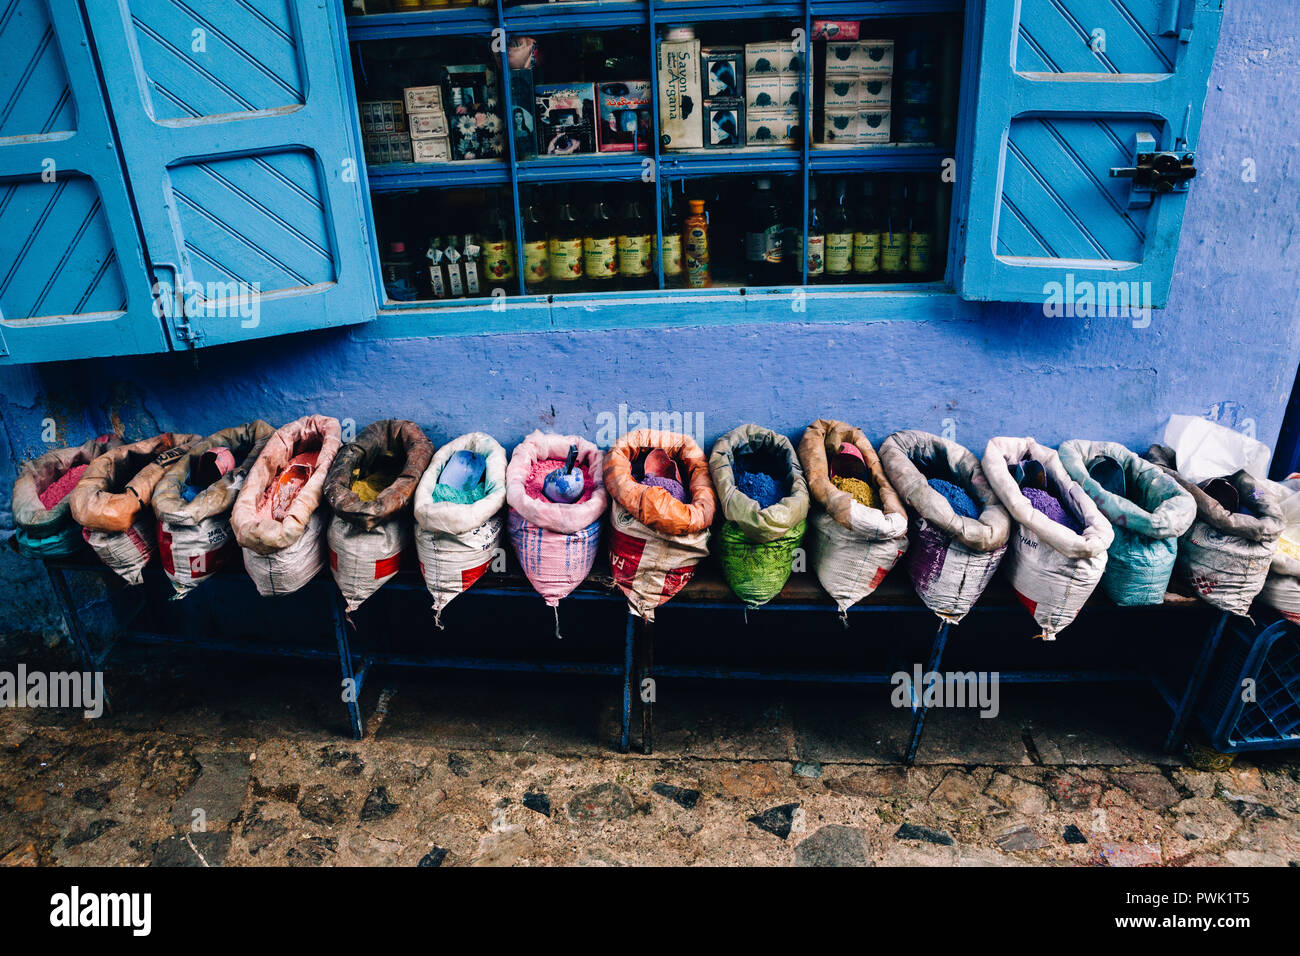 Chefchaouen, Morocco, 2018 - Stock Image